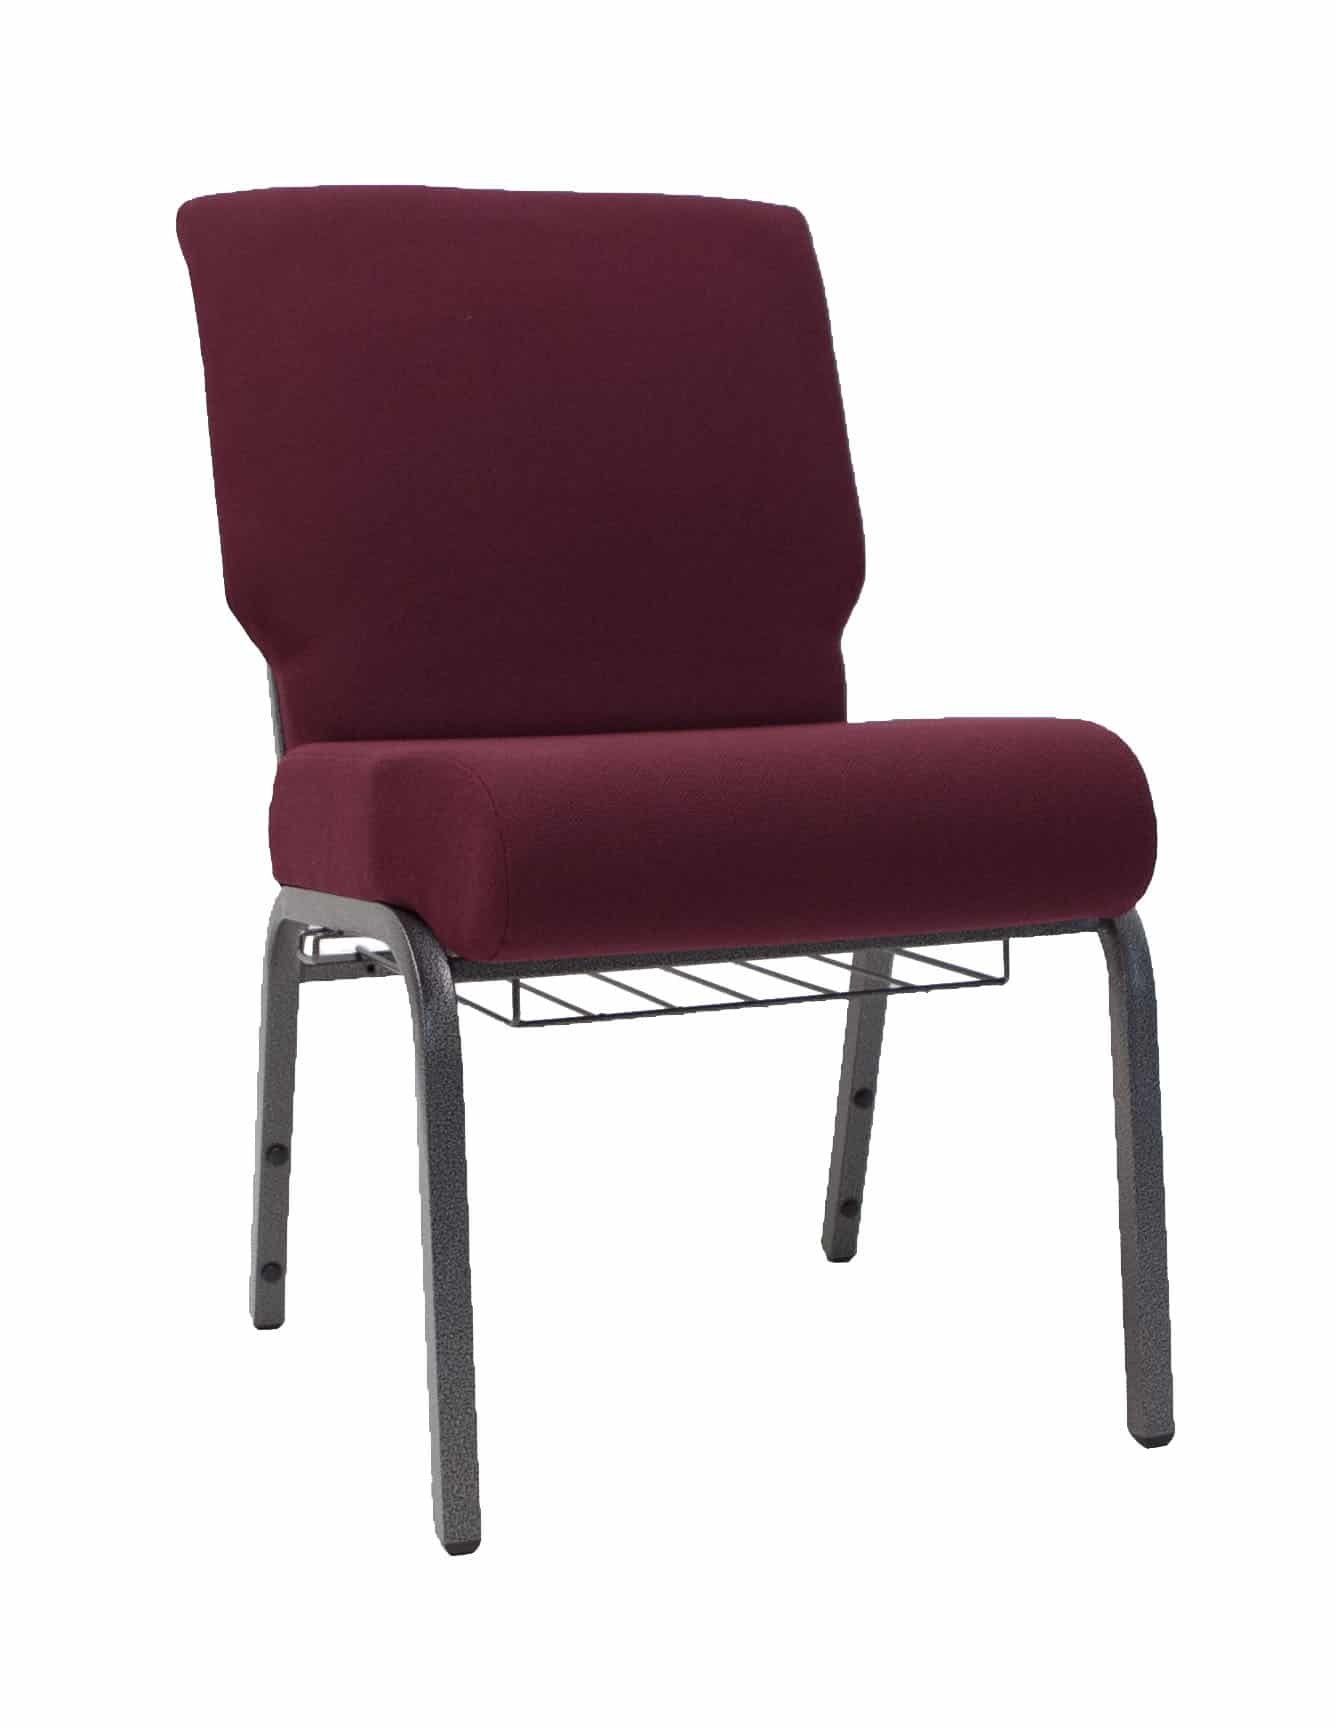 church banquet tables and chairs folding shower chair with back arms padded am cc maroon 20 inch